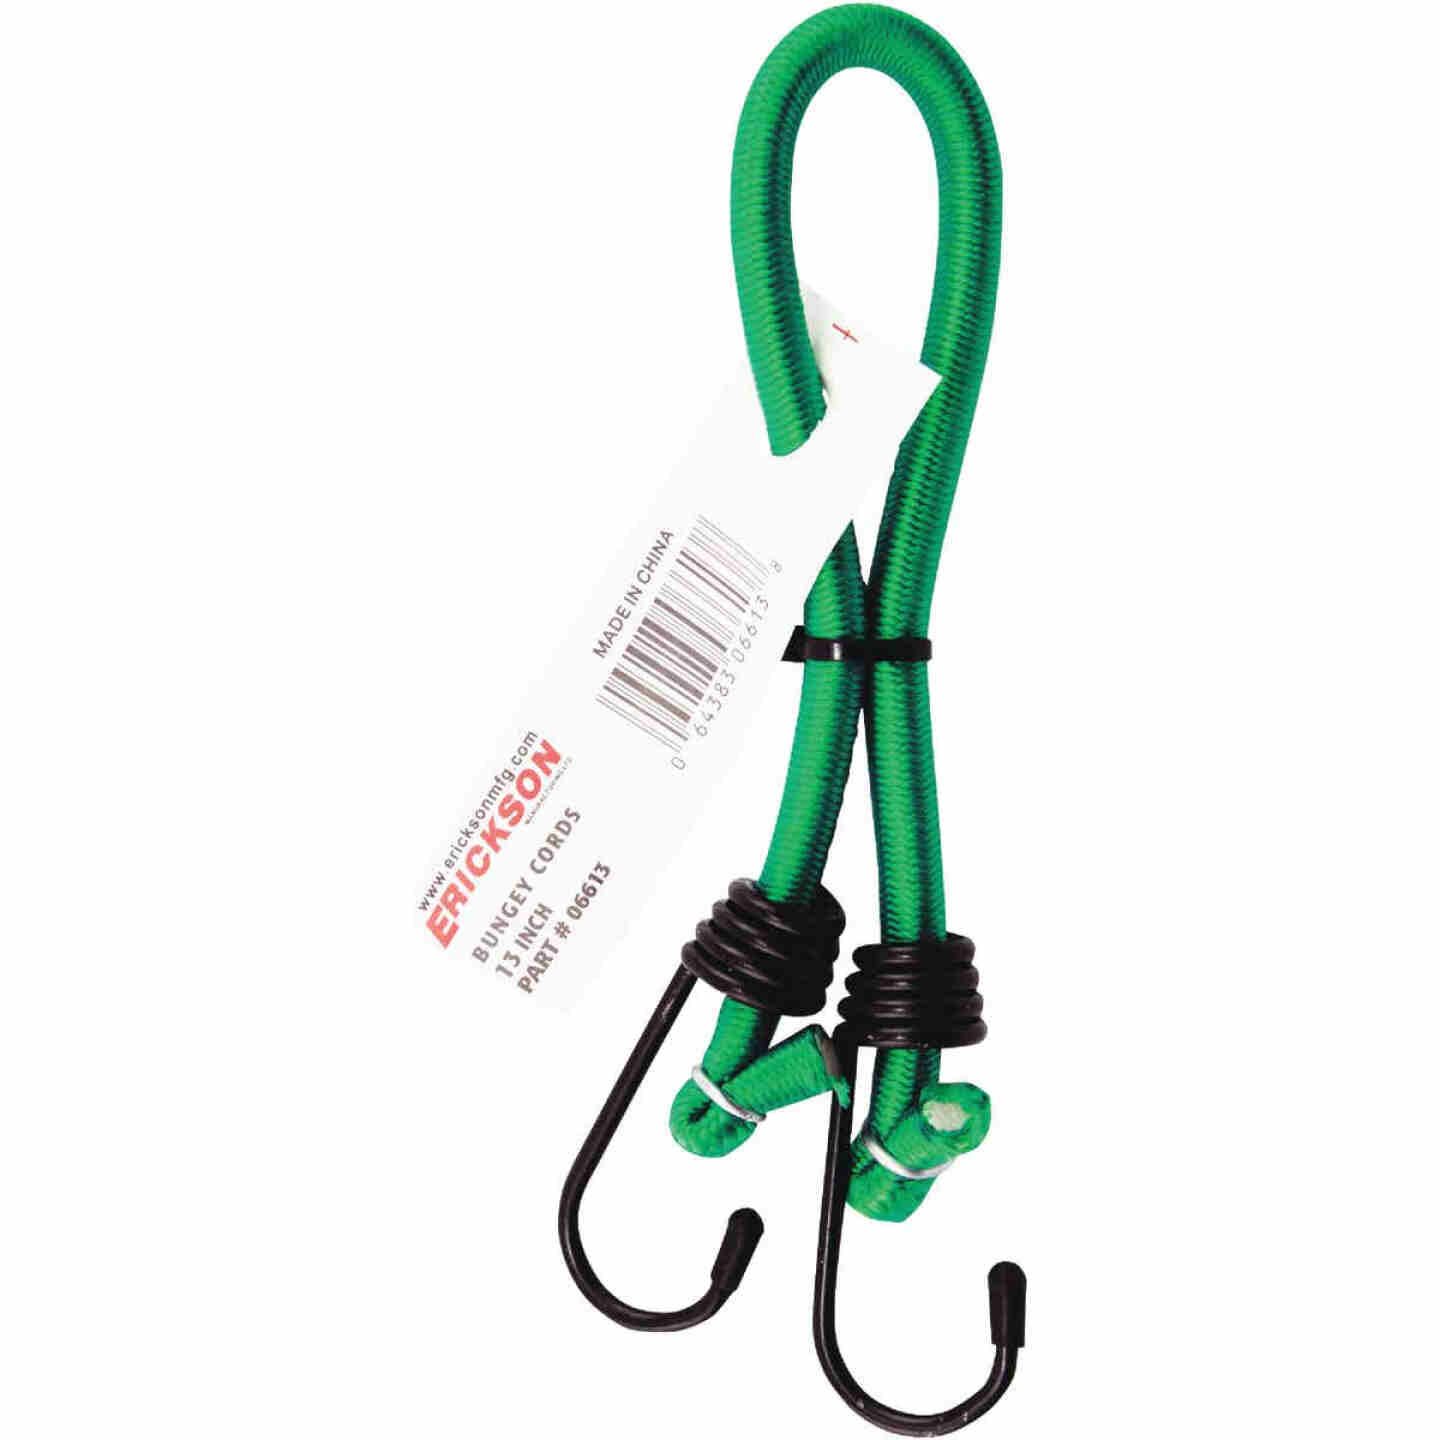 Erickson 1/4 In. x 13 In. Bungee Cord, Assorted Colors Image 2